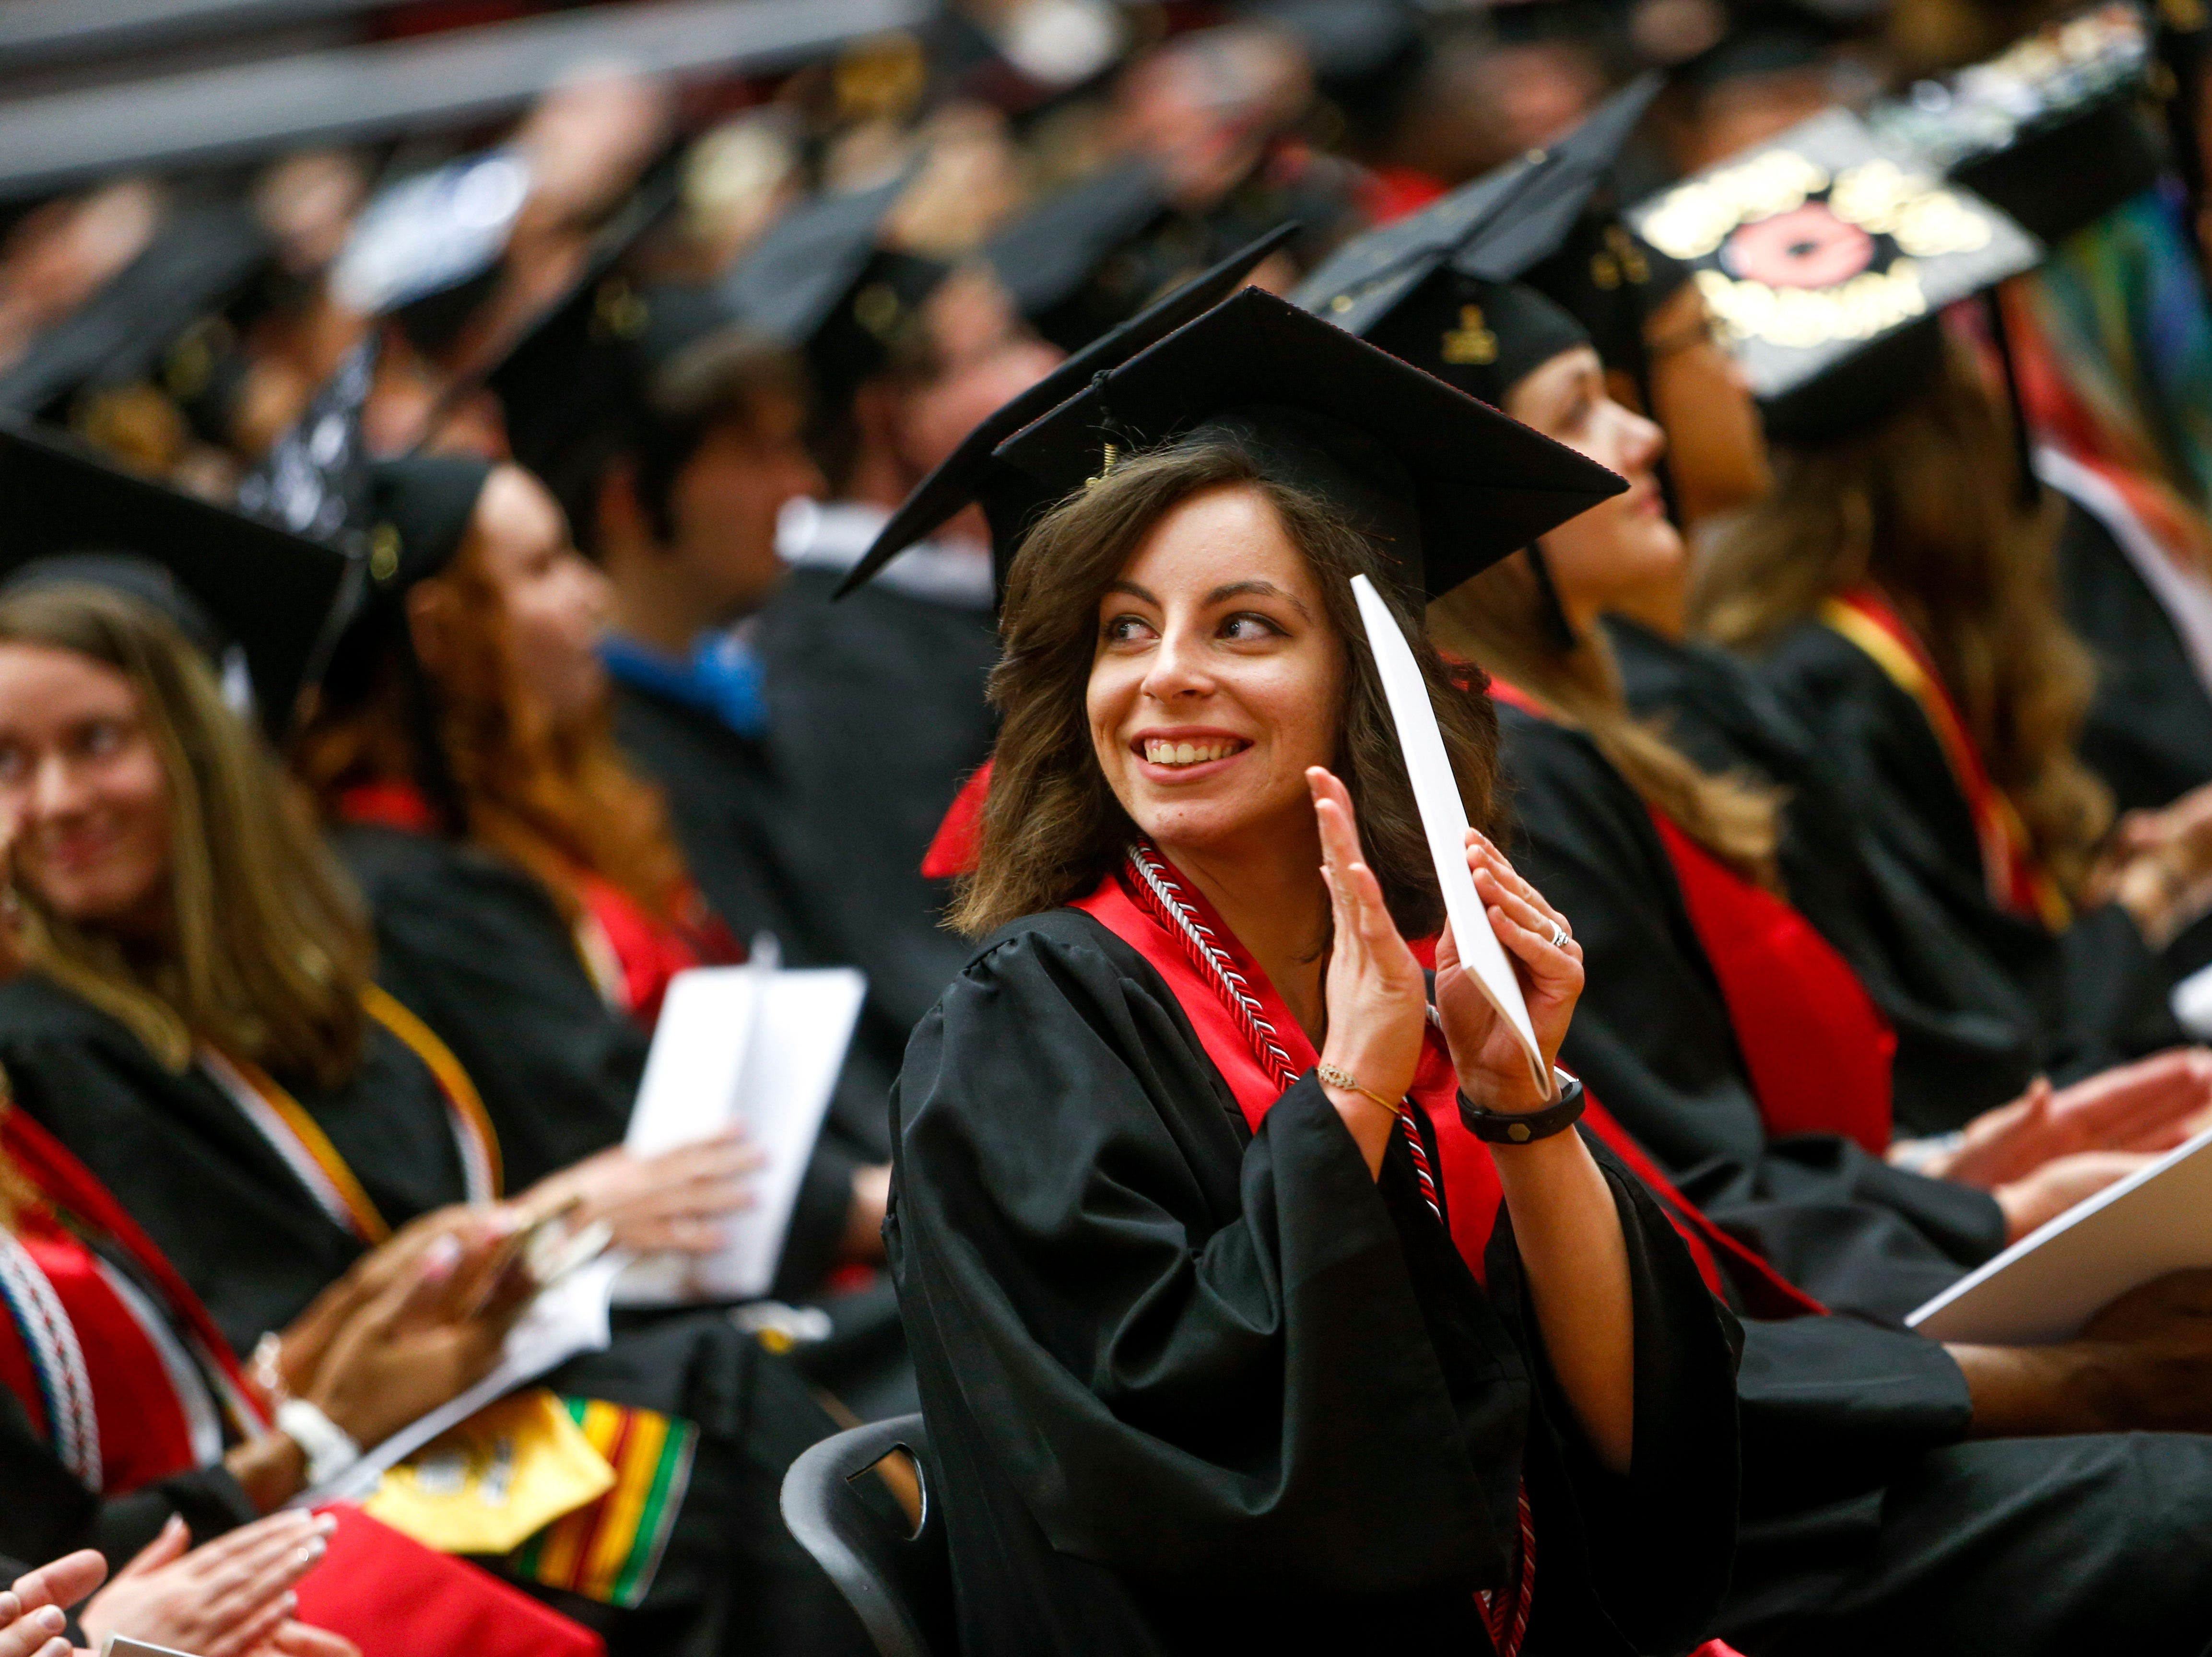 APSU students clap for family members in attendance at the Austin Peay spring commencement ceremony 2019 for College of Business and College of STEM at Winfield Dunn Center in Clarksville, Tenn., on Friday, May 3, 2019.